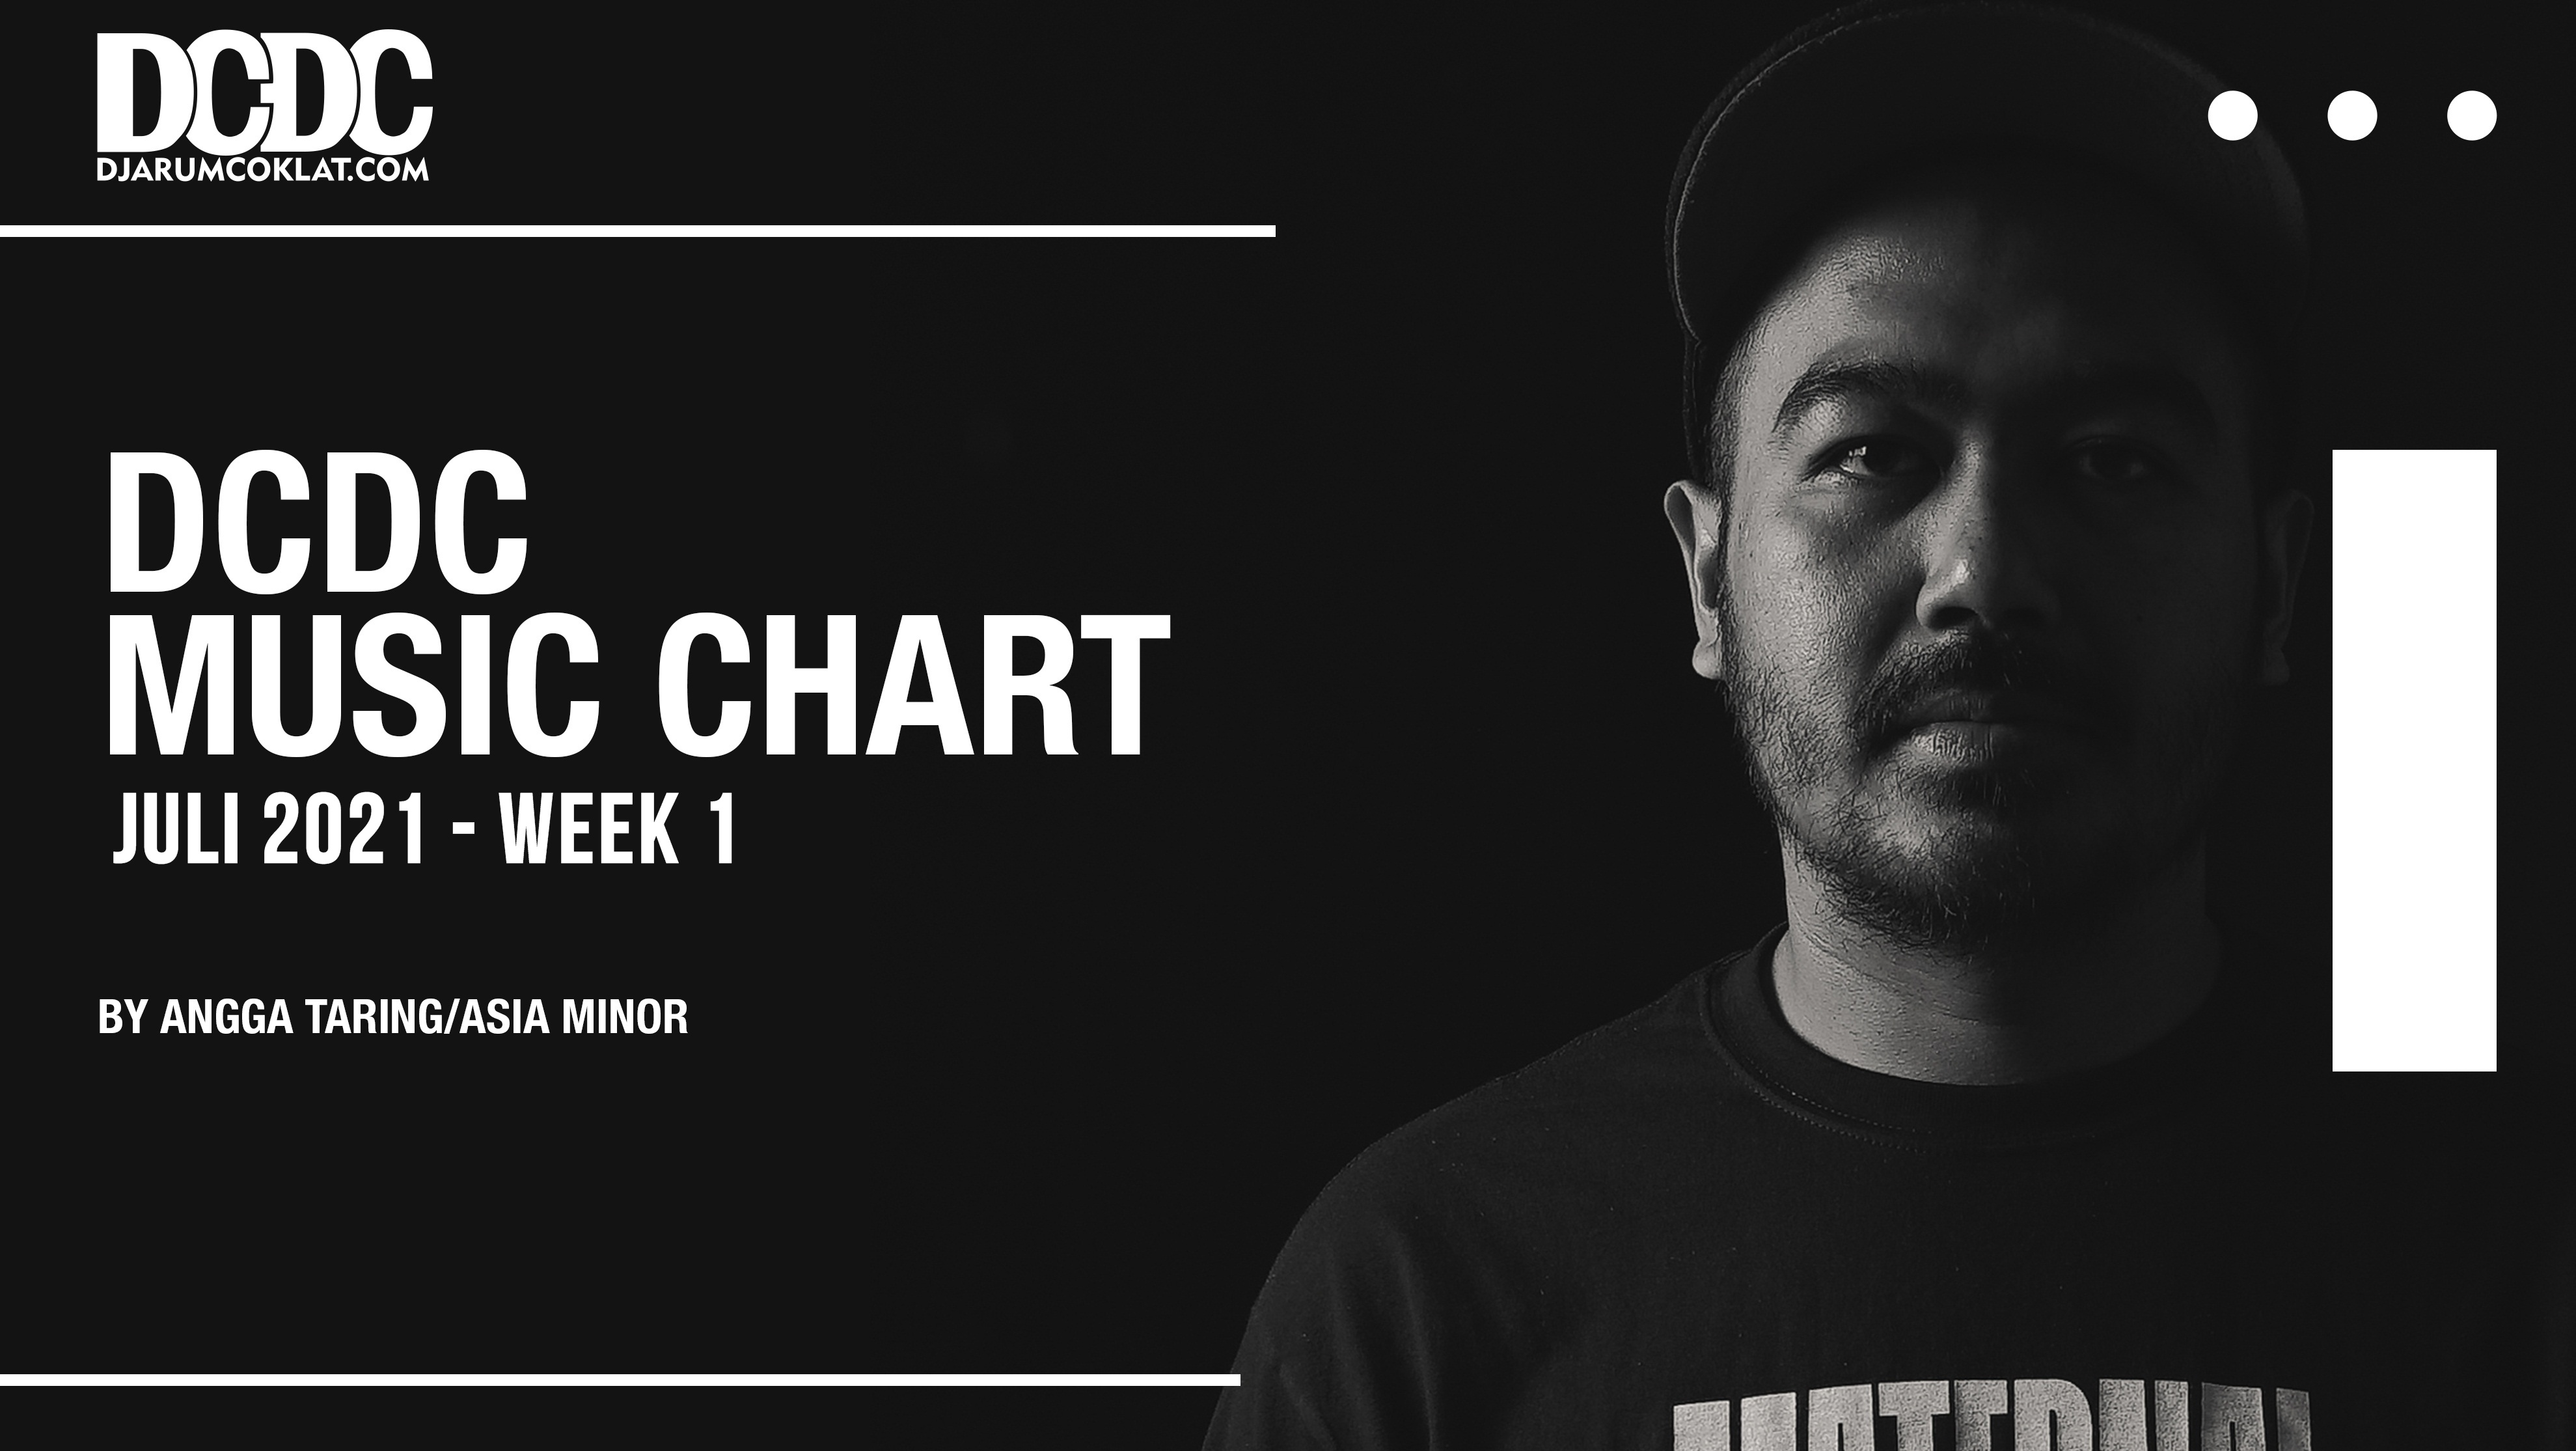 DCDC Music Chart - #1st Week of July 2021